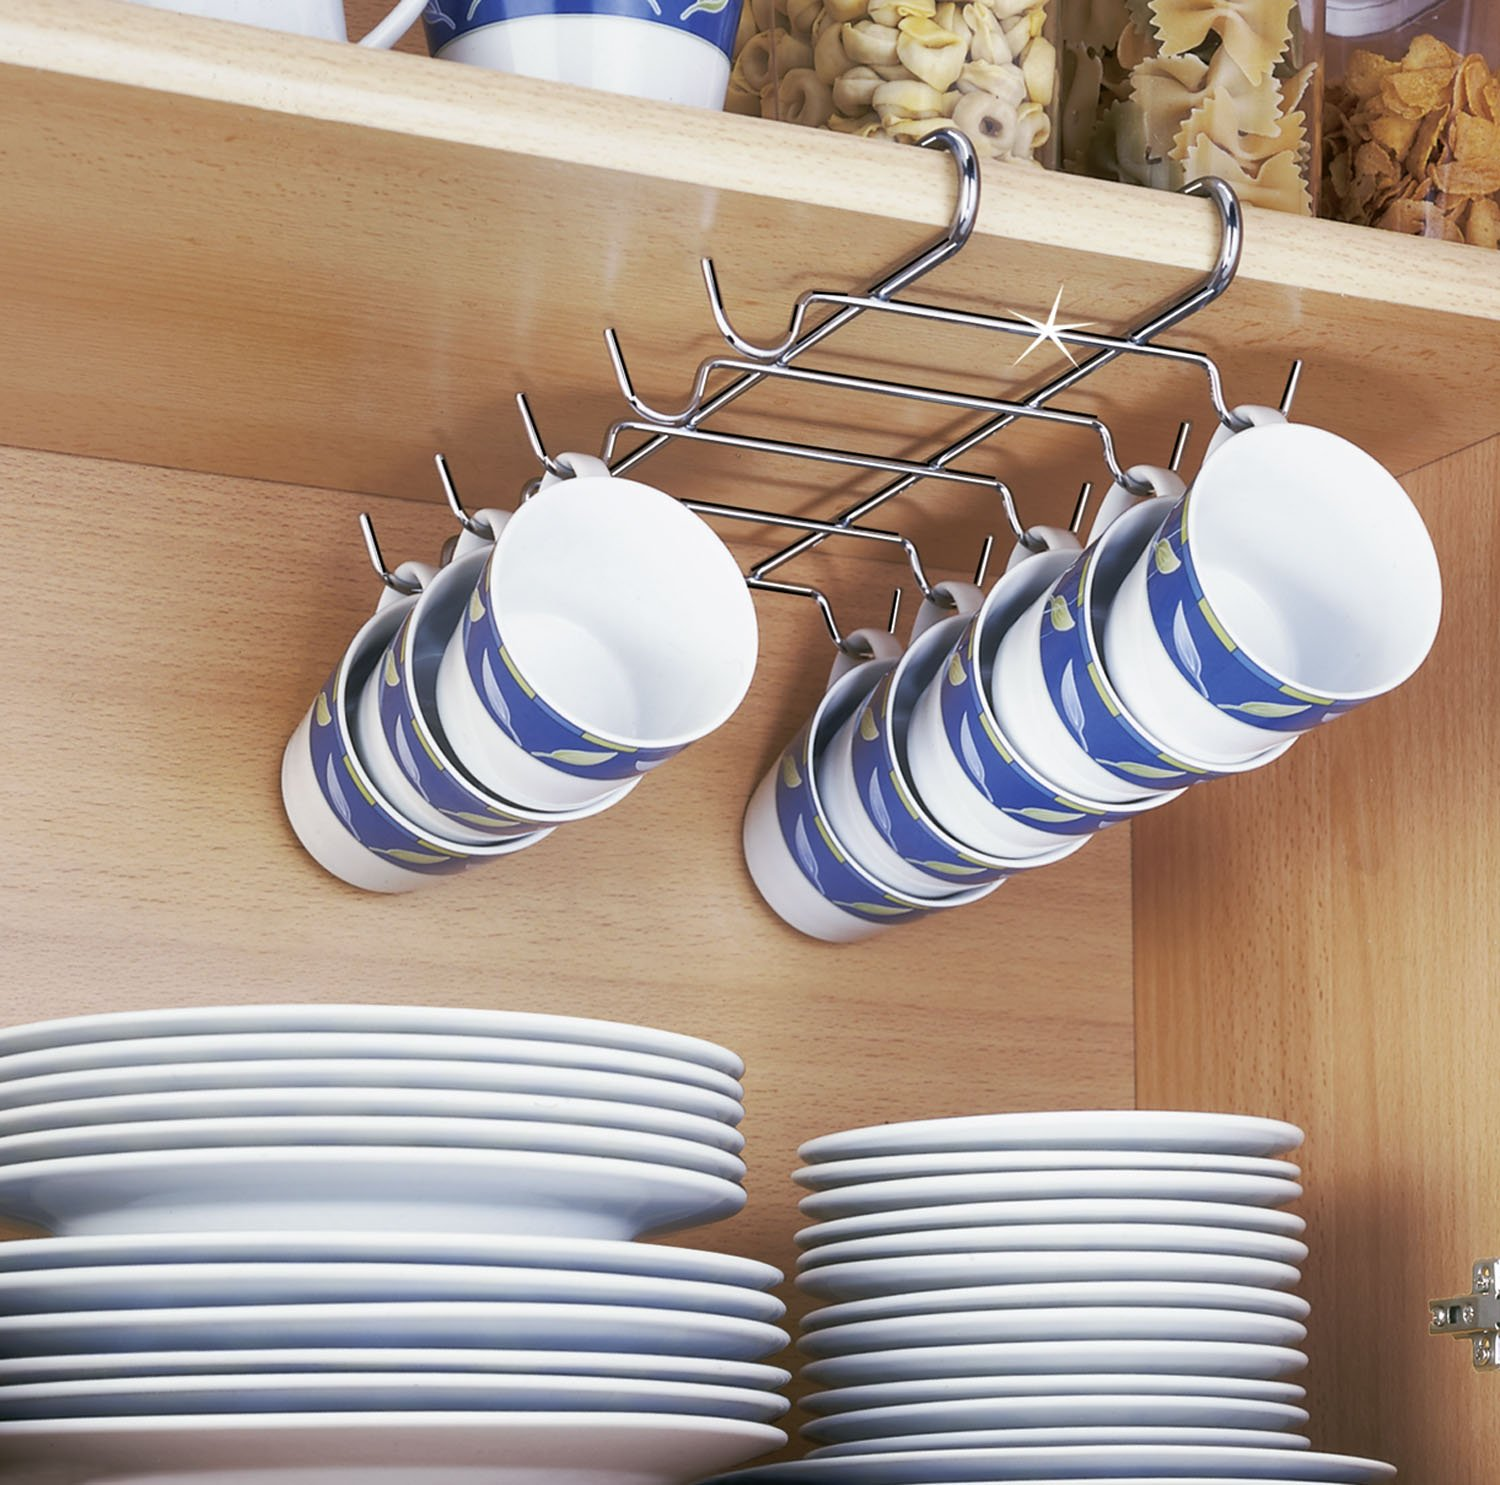 Find the right look for your kitchen